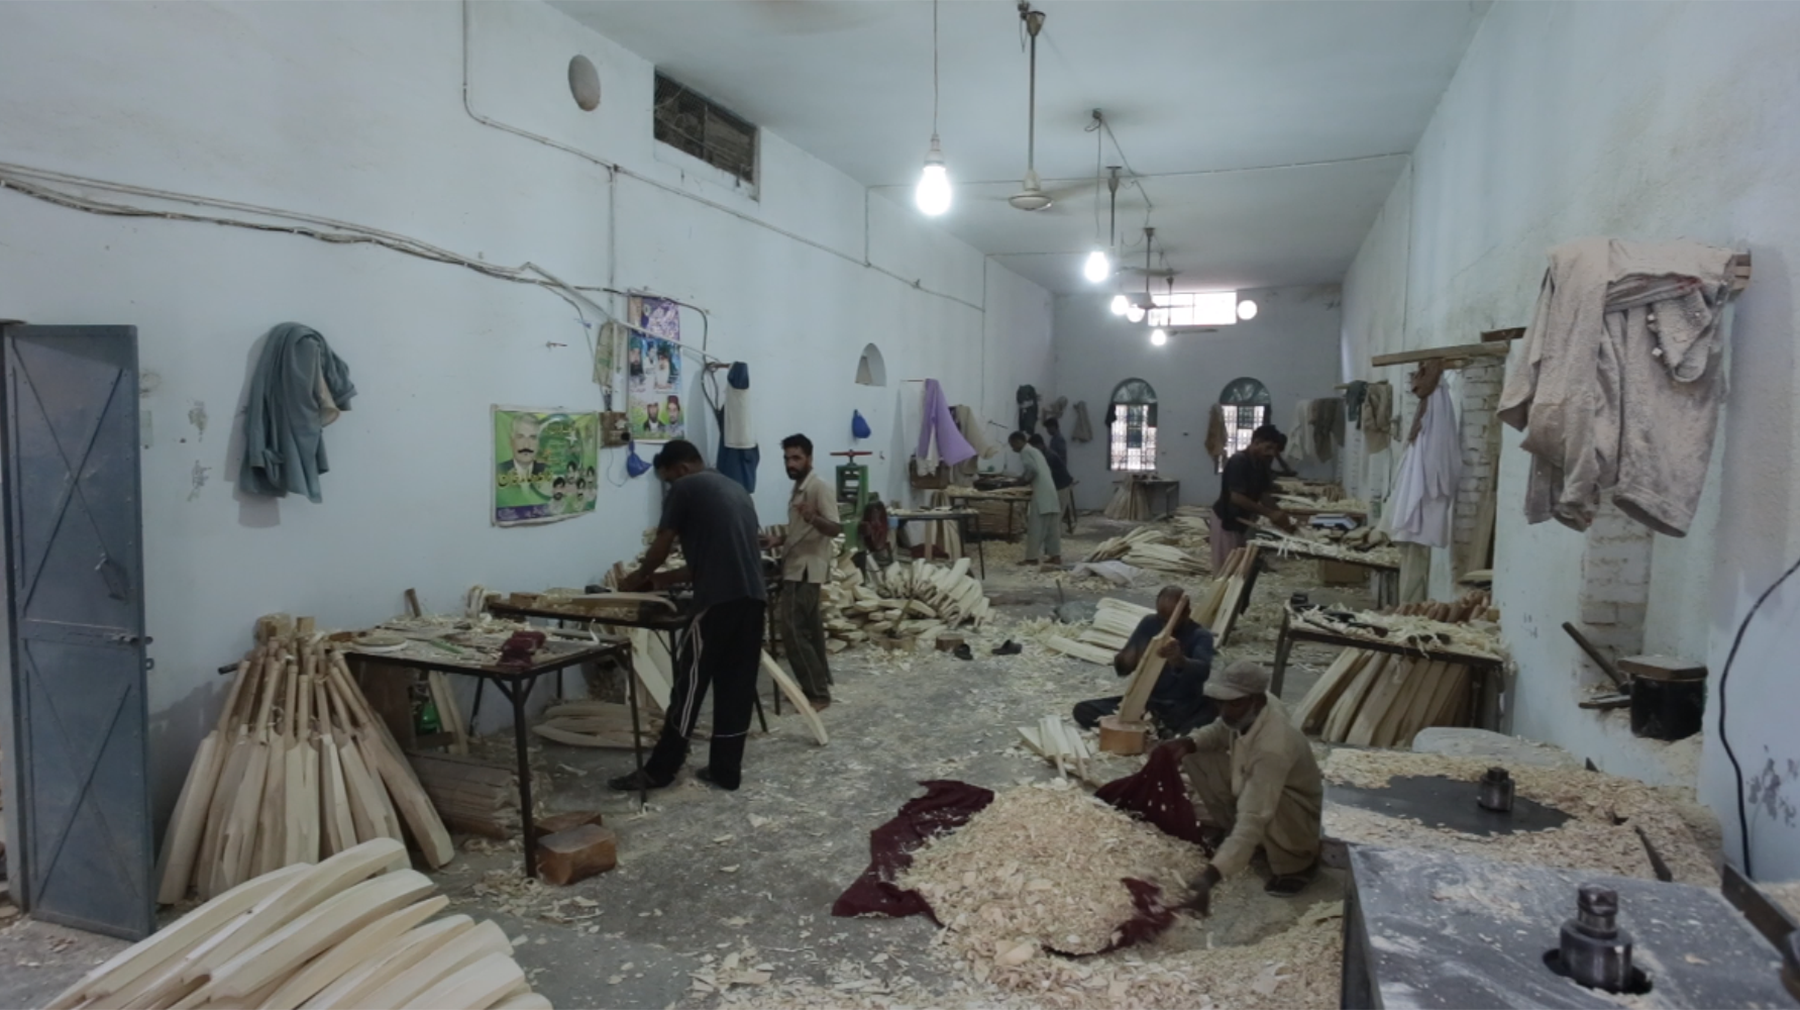 Workers busy carrying out their individual tasks inside the factory.